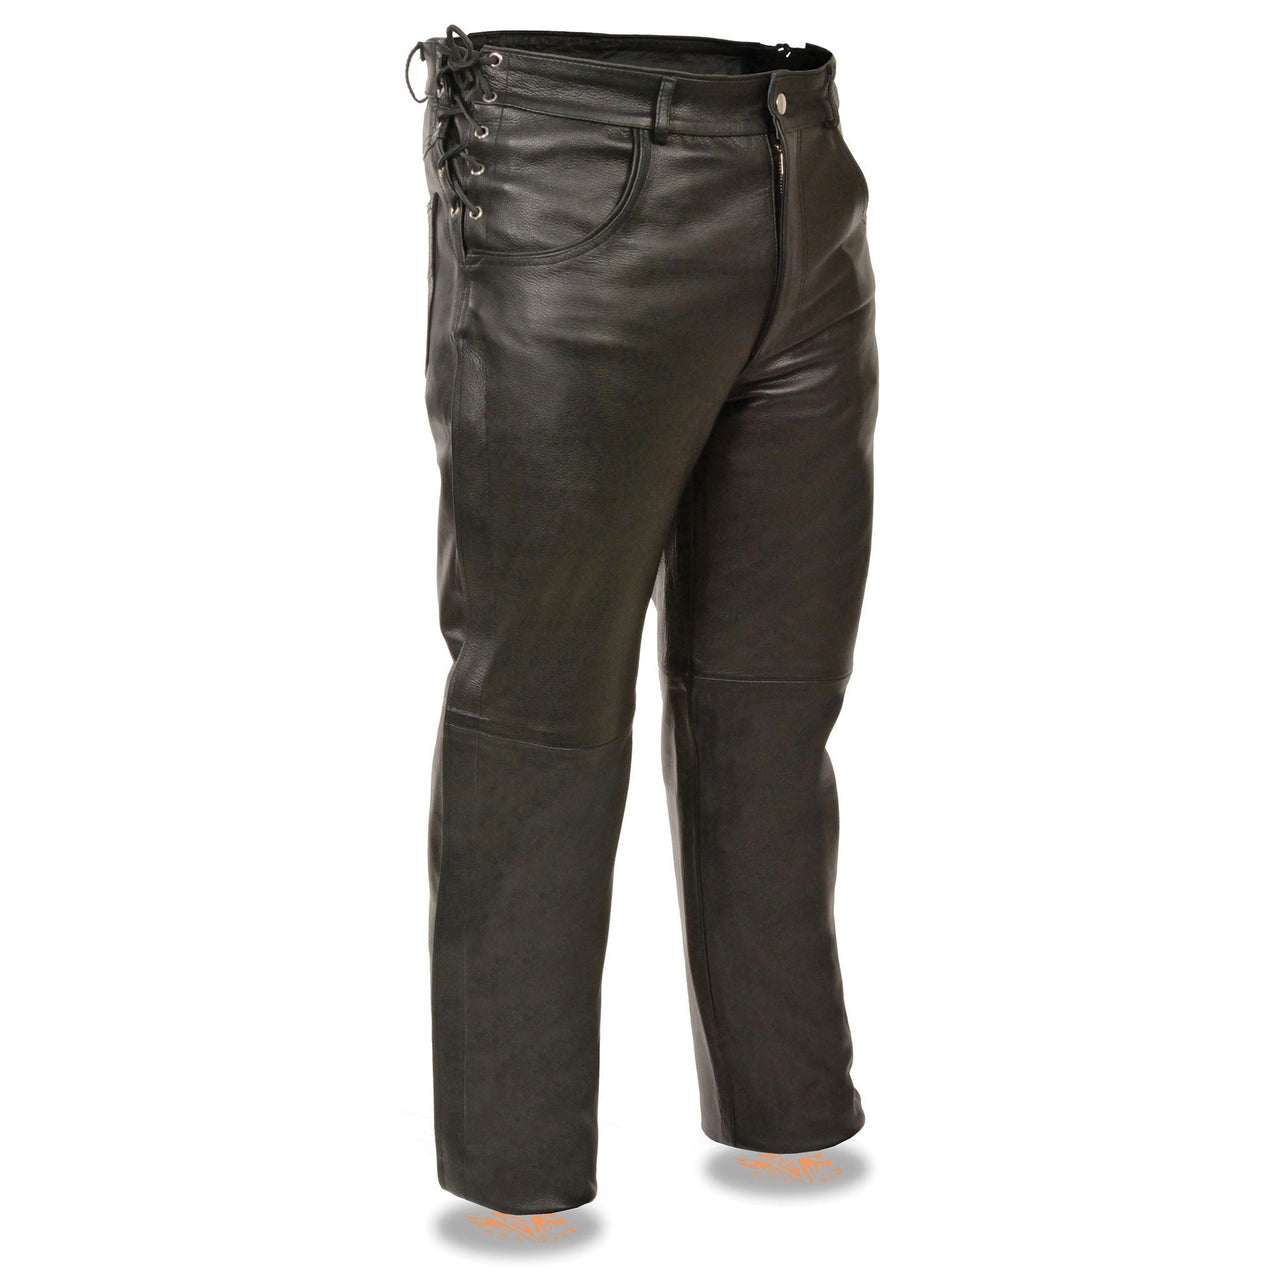 Men's deep pocket over pants w/ side laces for adjustment - HighwayLeather